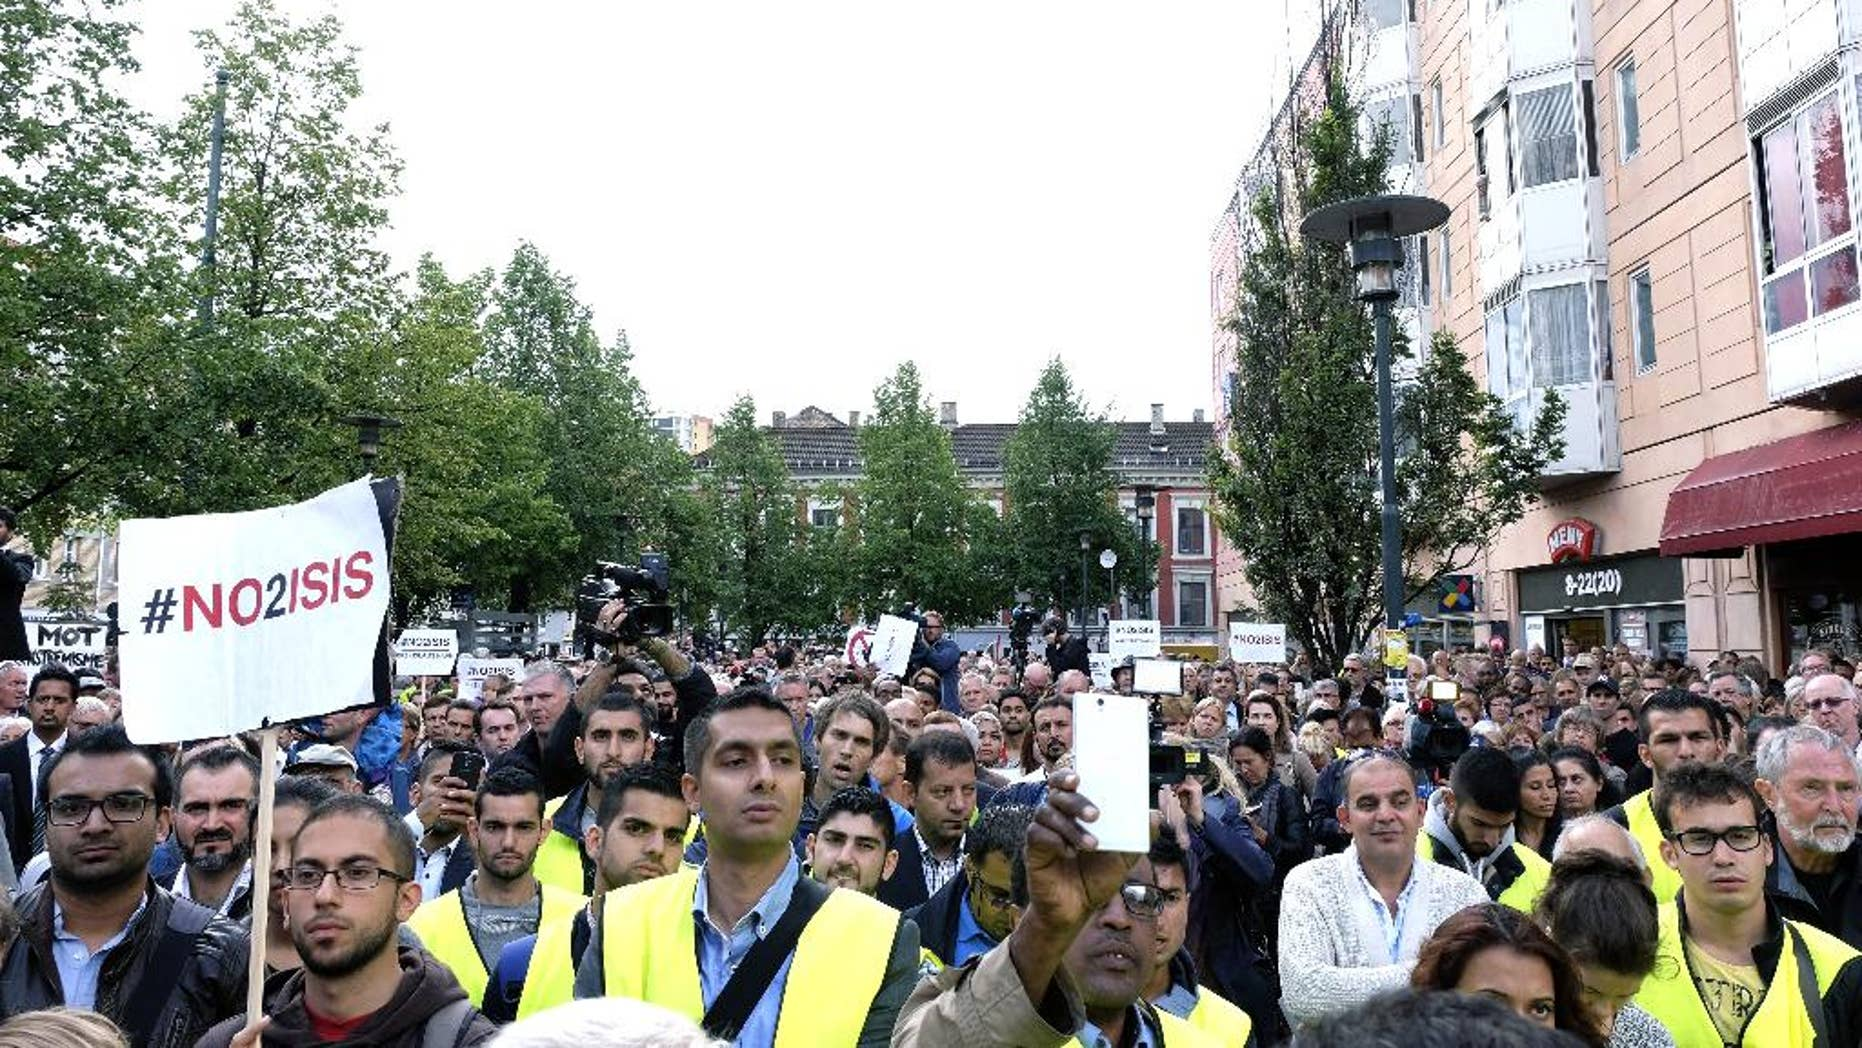 Some of the almost 5,000 protestors attending a demonstration against ISIS, in Oslo, Monday, Aug. 25, 2014. Different Muslim groups were behind the initiative which was attended by political and Muslim leaders. ISIS is an acronym for the Islamic State group. (AP Photo/NTB Scanpix, Torstein Boe) NORWAY OUT